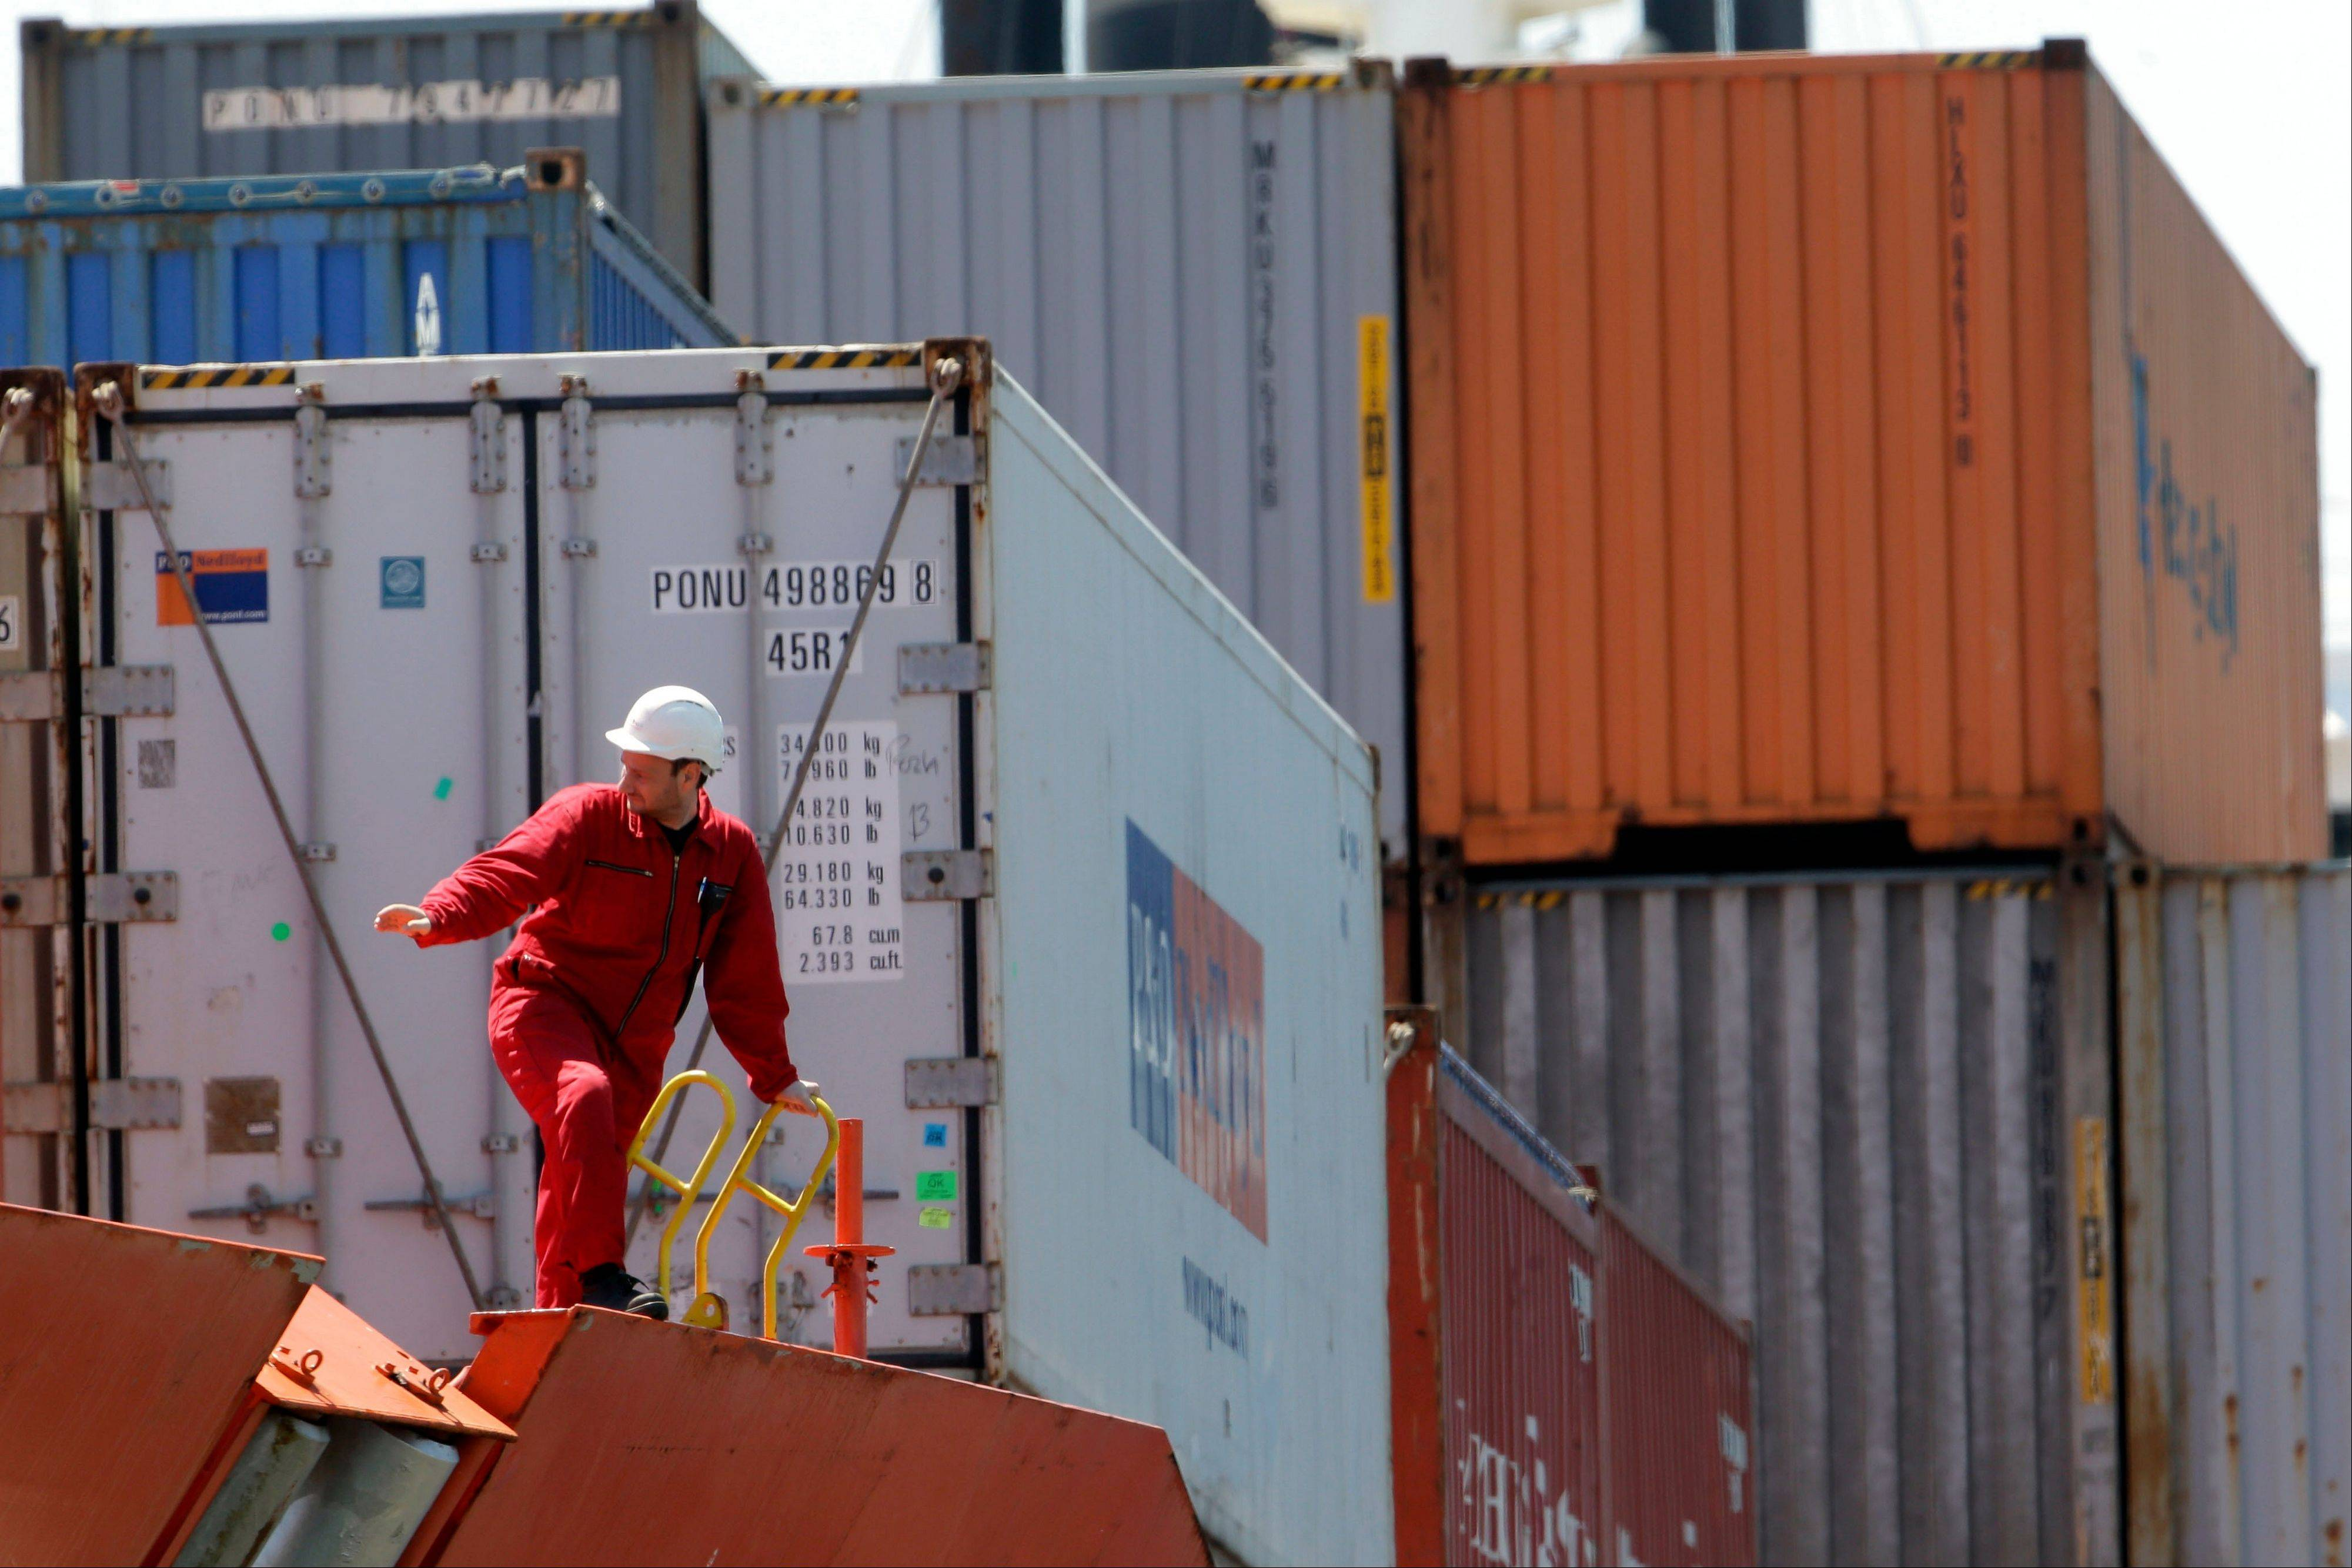 Associated PressA sailor on the Bahia Castillo, a Hamburg SUD-operated refrigerated cargo ship carrying fresh Chilean fruit and other goods, signals as it docks at Packer Avenue Marine Terminal, in Philadelphia. The U.S. trade deficit increased in May to the highest level in six months as a weak global economy depressed U.S. export sales while imports of autos and other nonpetroleum products hit an all-time high.